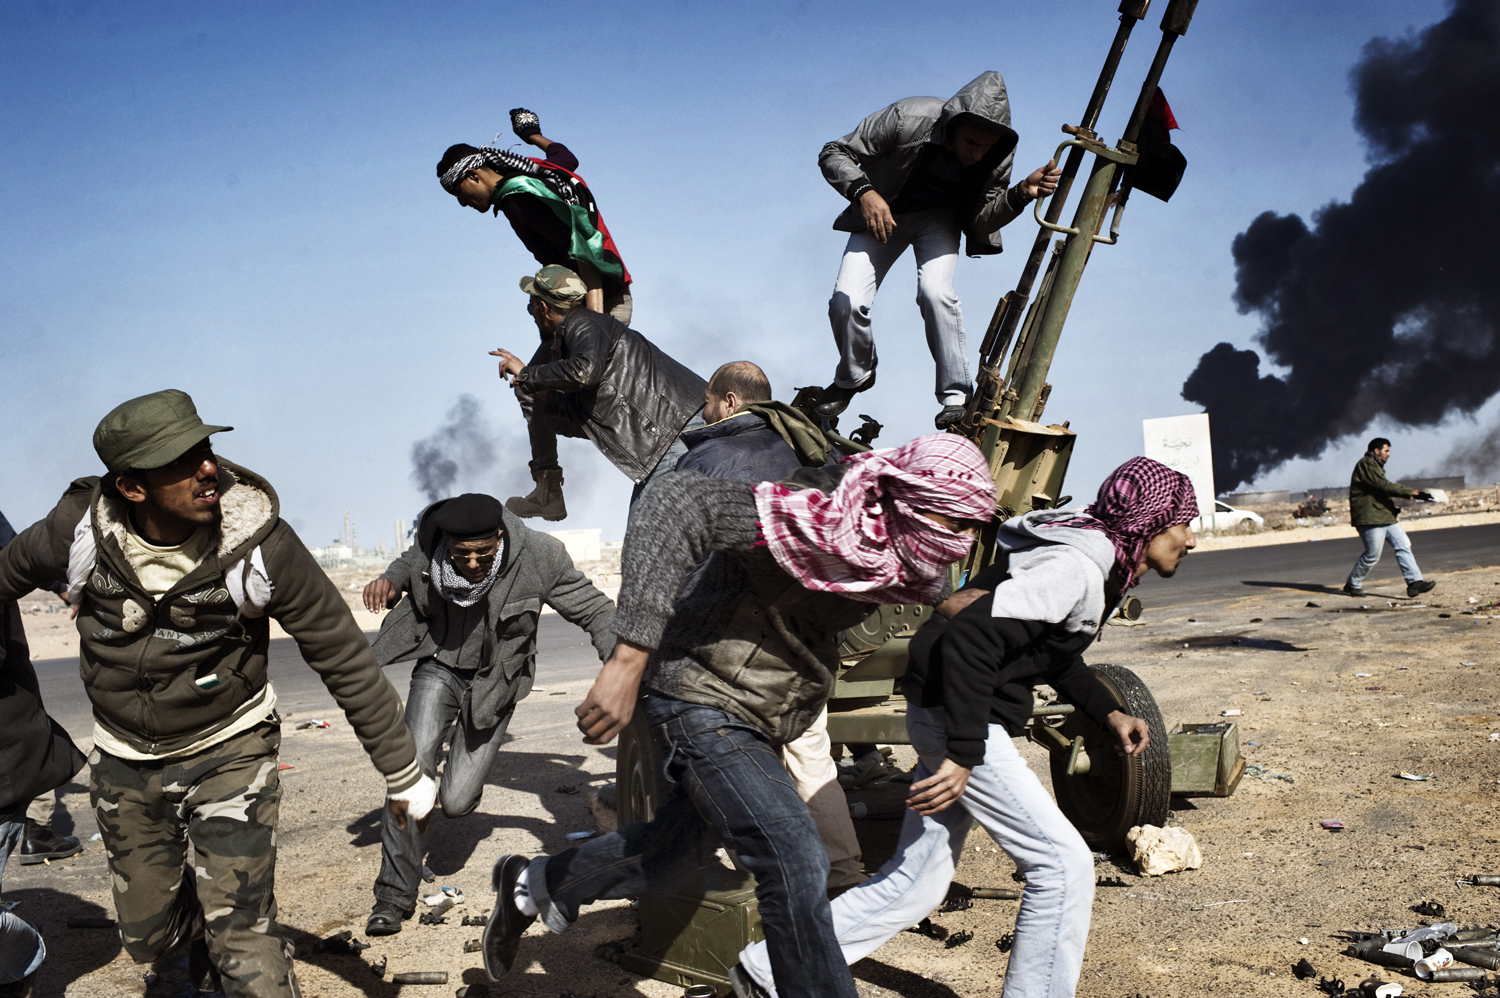 Rebels flee under fire from the Libyan army in Ras Lanuf, March 11, 2011.